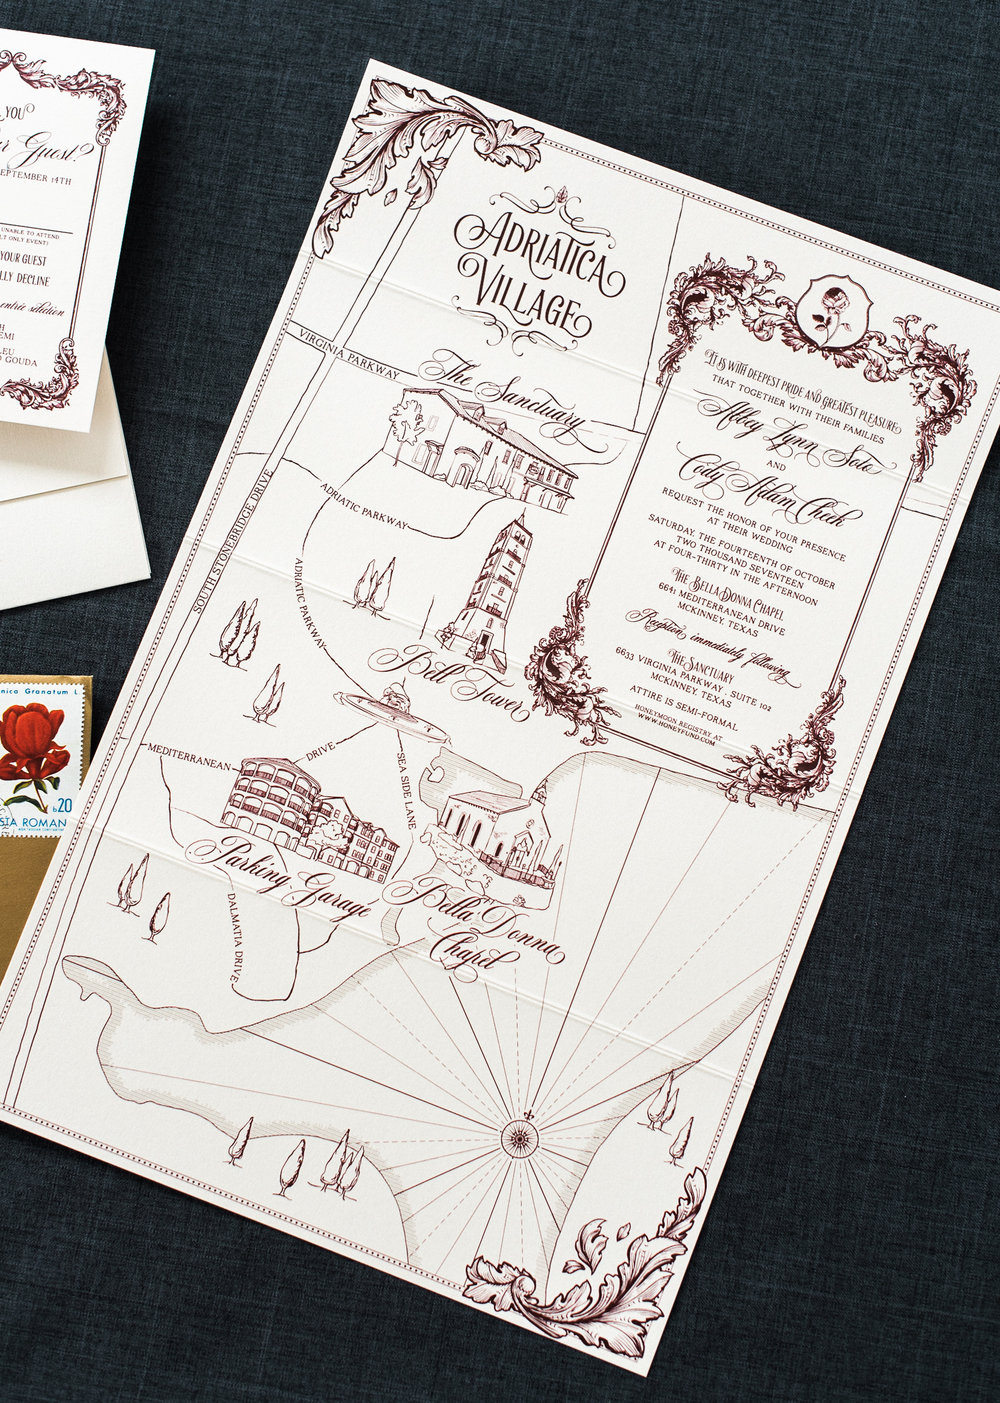 Adriatica Village Wedding Map